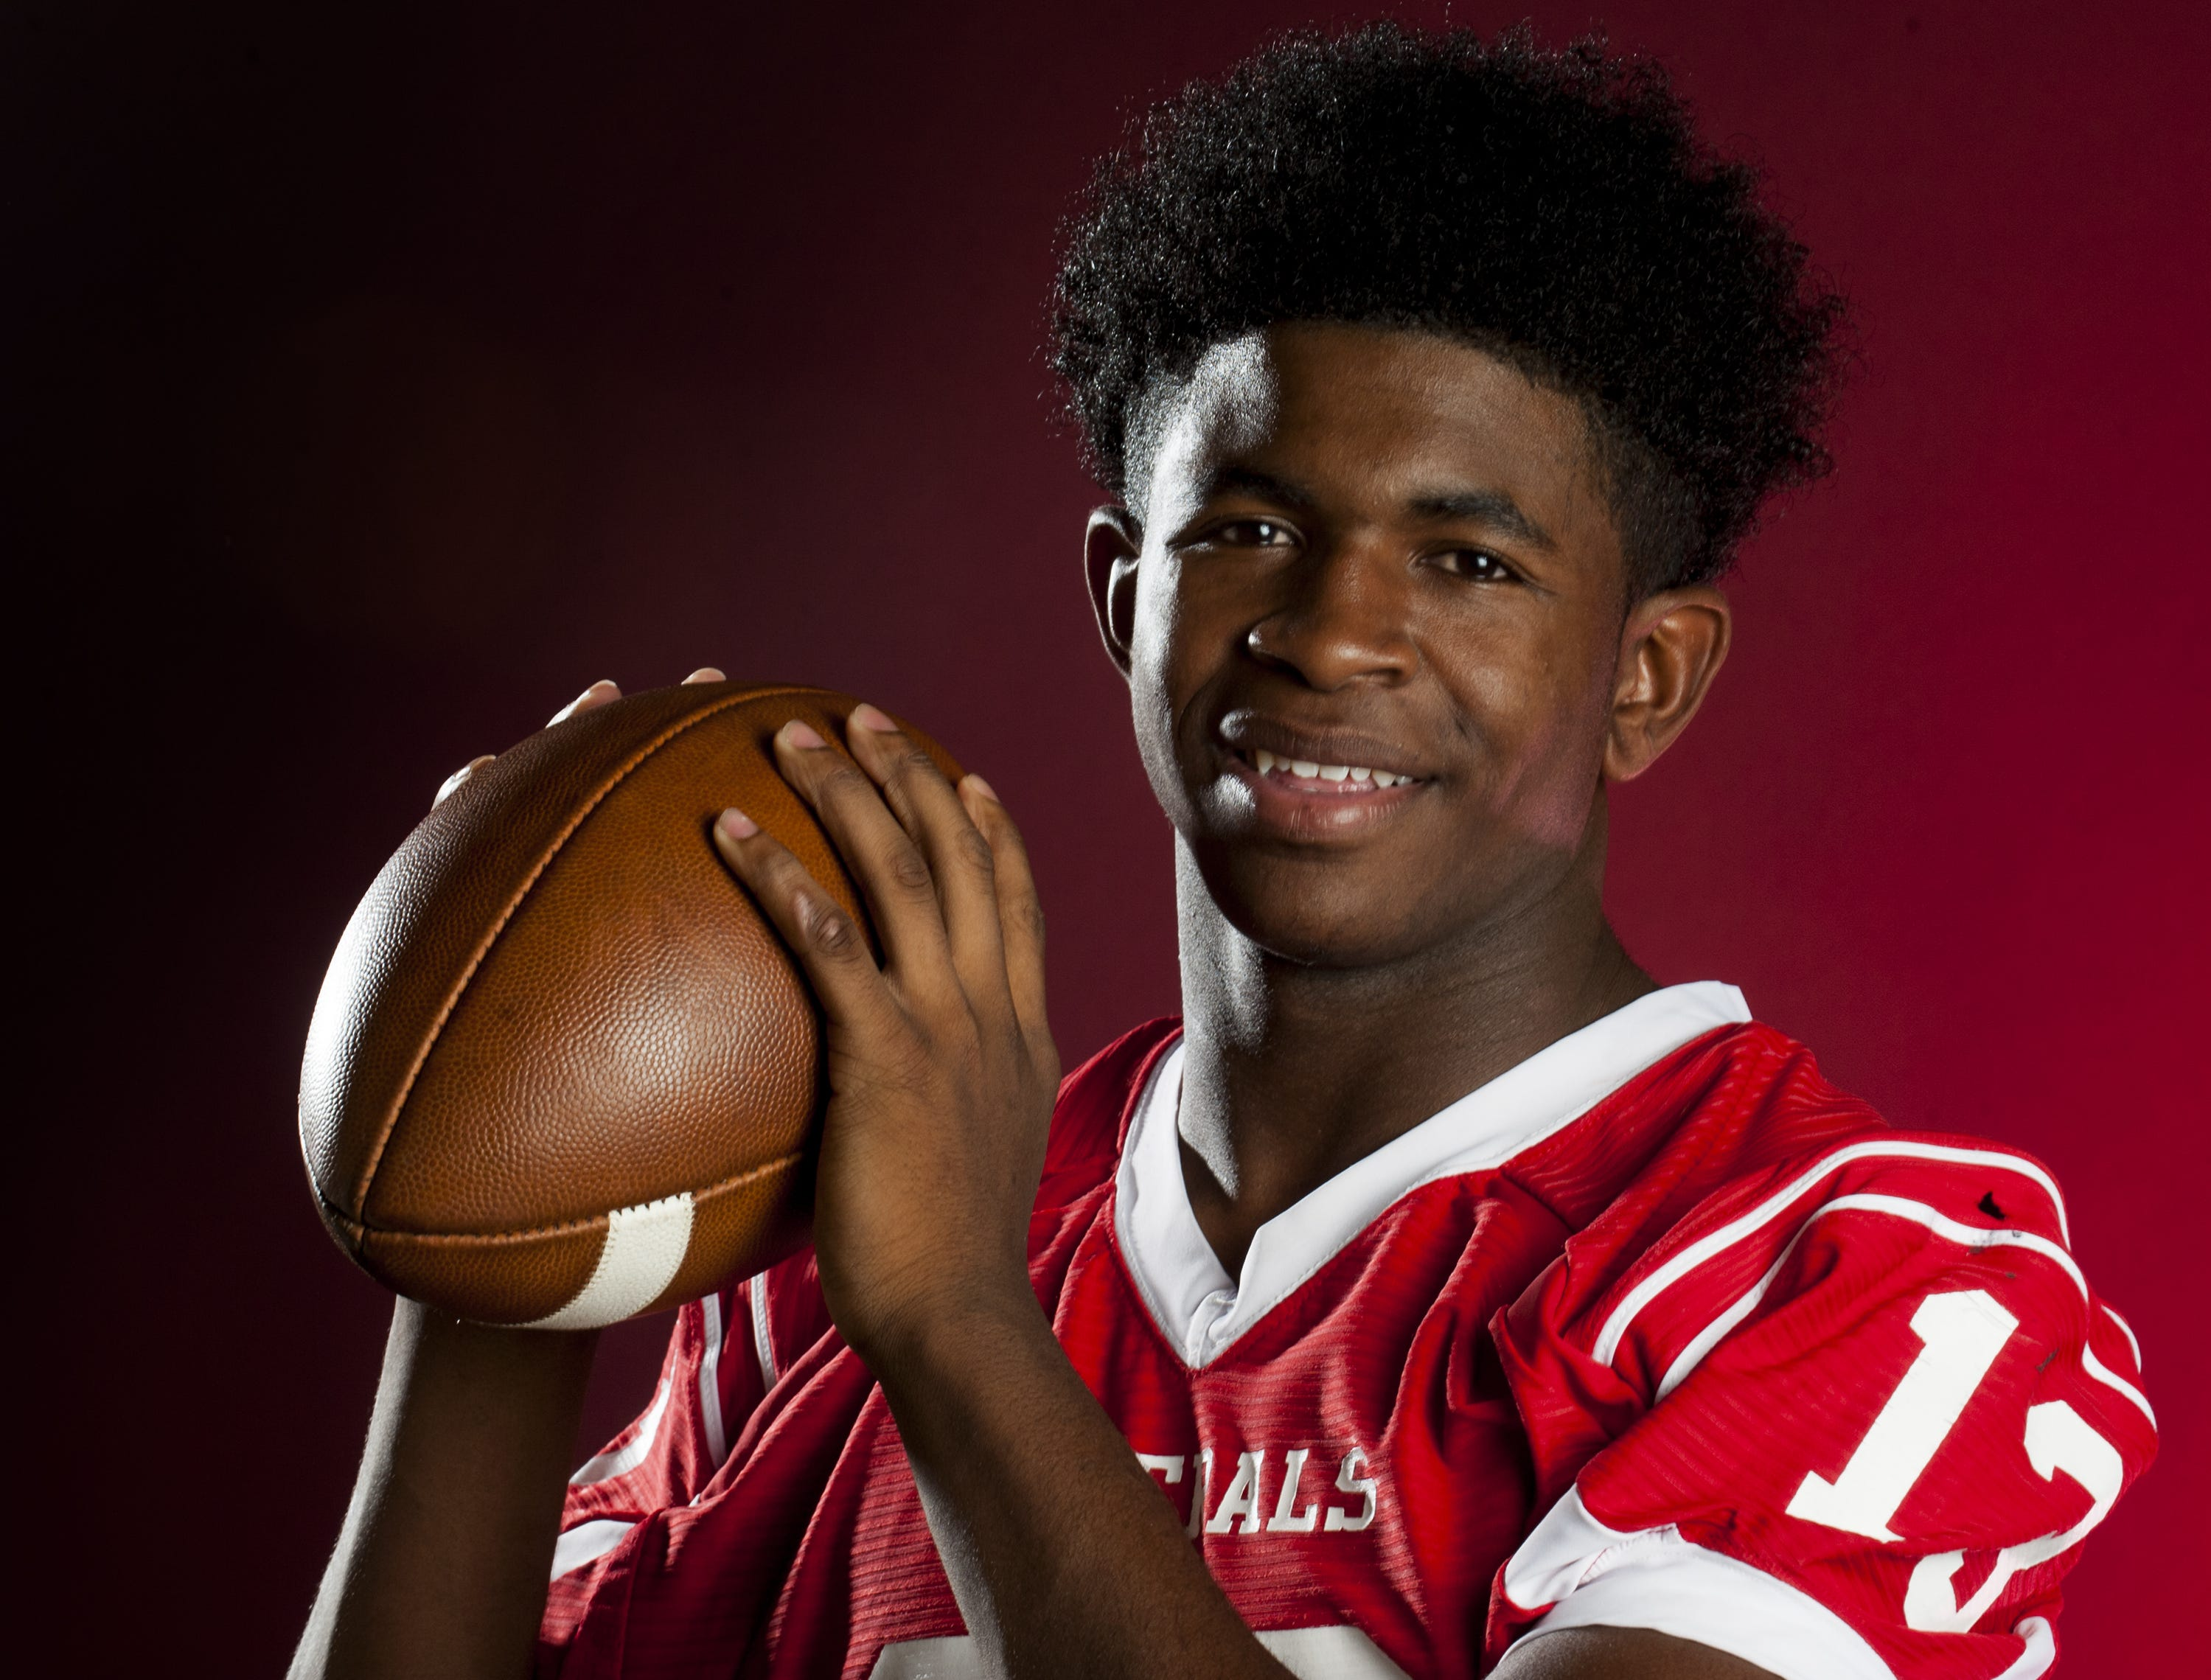 Montgomery Advertiser All-Metro 5A-7A Football Player of the Year, Shaquille Johnson of Lee High School, shown in Montgomery, Ala. on Thursday December 10, 2015.